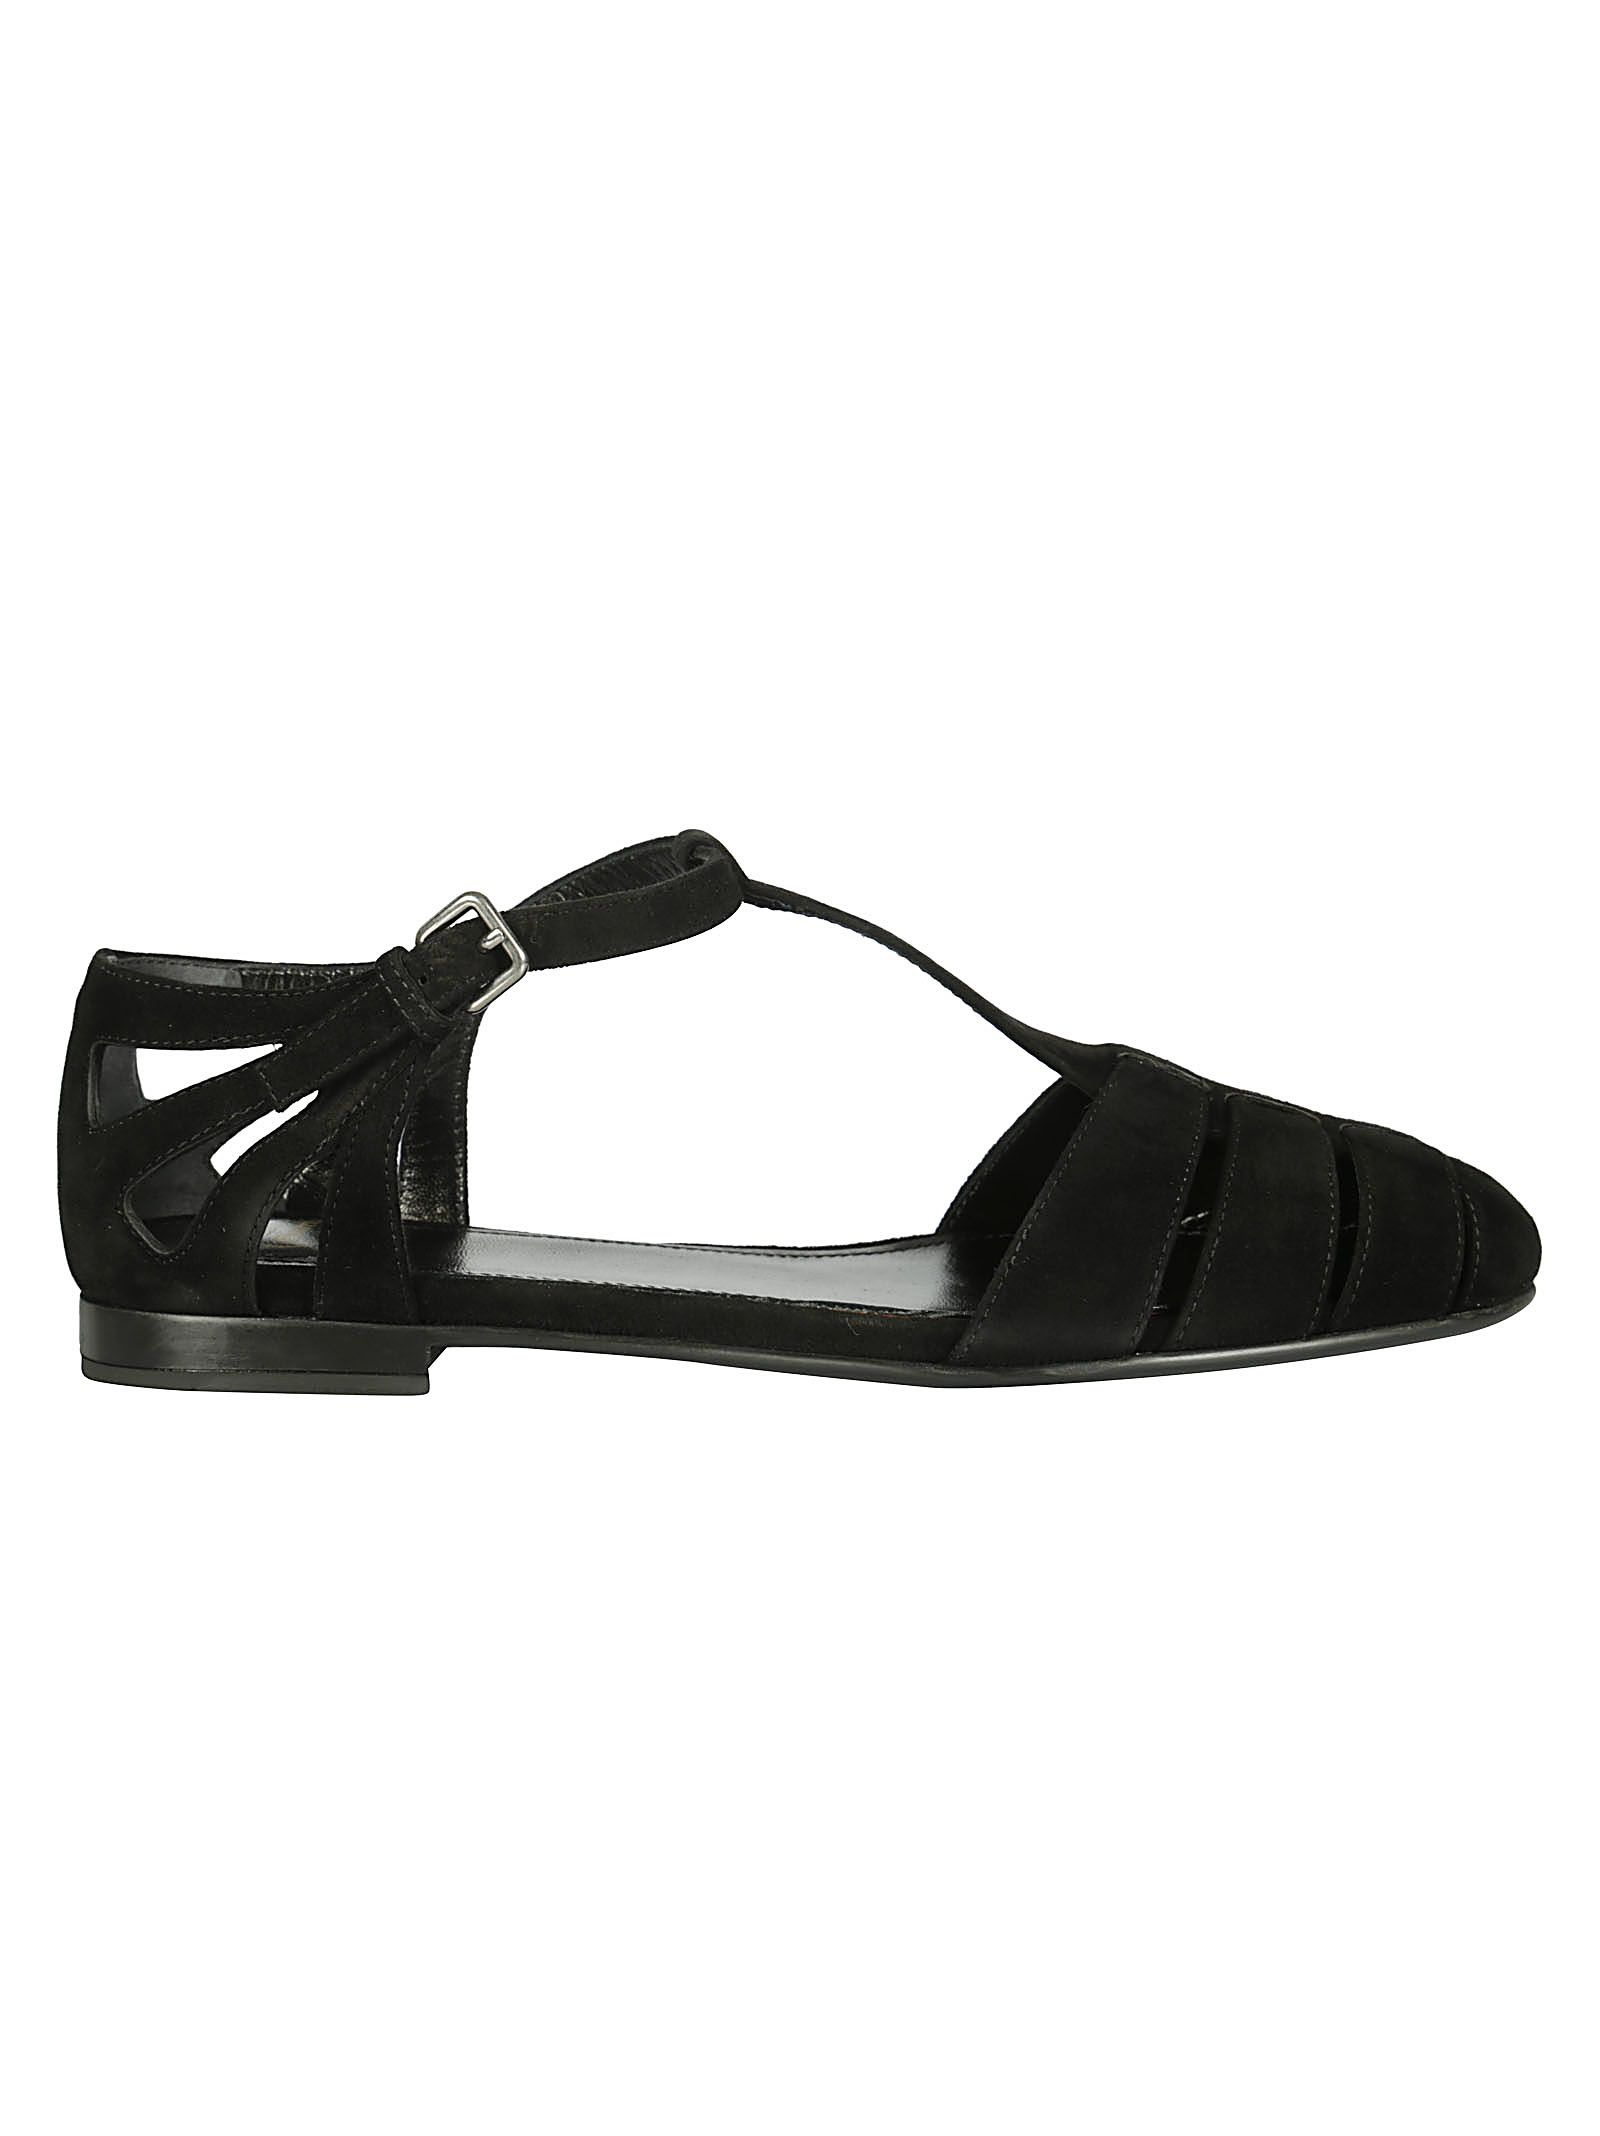 Latest Discount Church's Rainbow Flat Sandals Online Cheap Price Buy Cheap Fashionable dpVZHFCTy